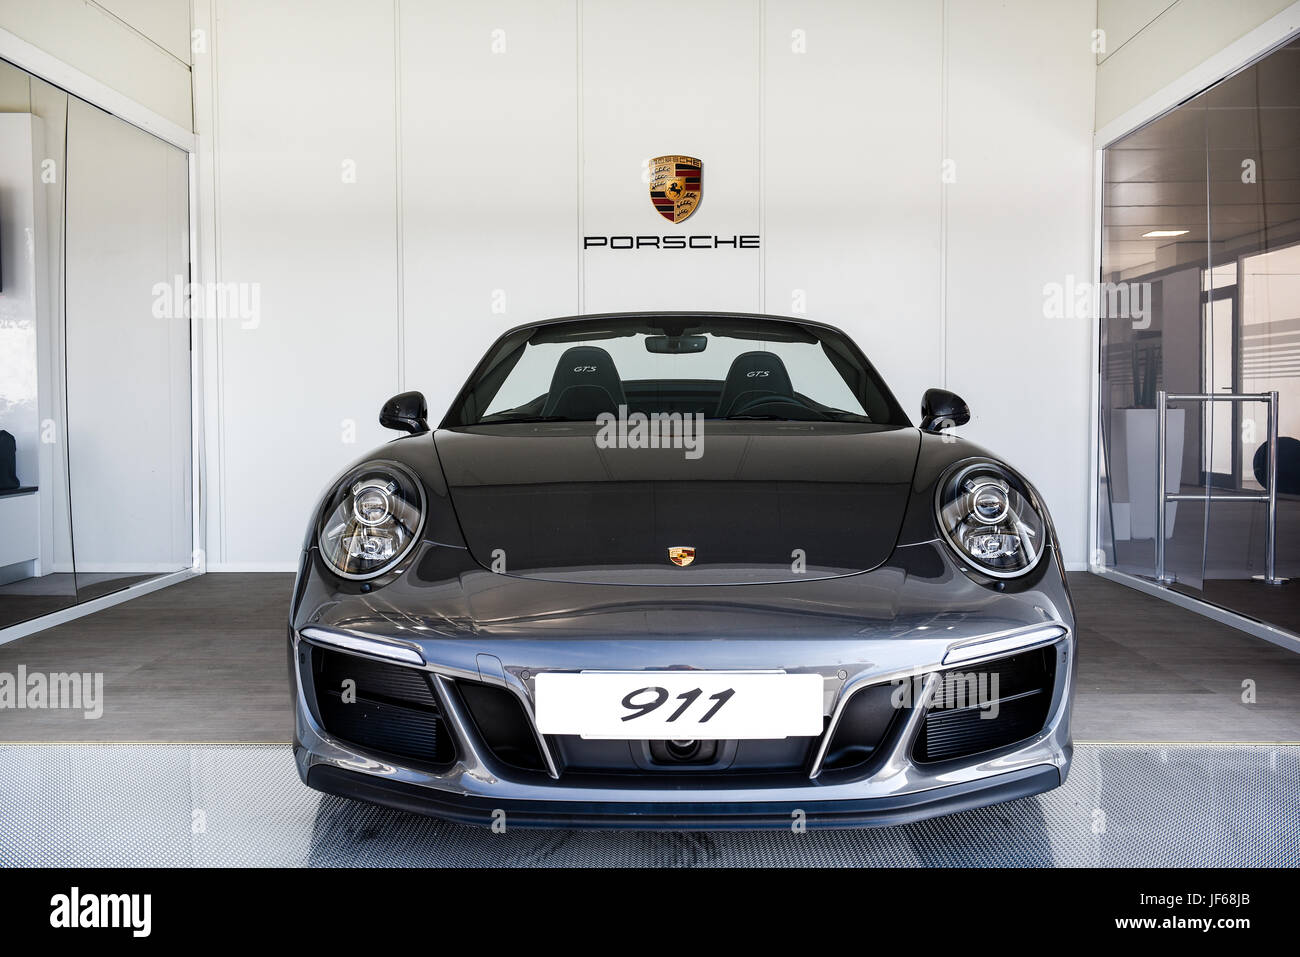 Black Metal Porsche 911 Car Front View Logo And Brand Name In Stock